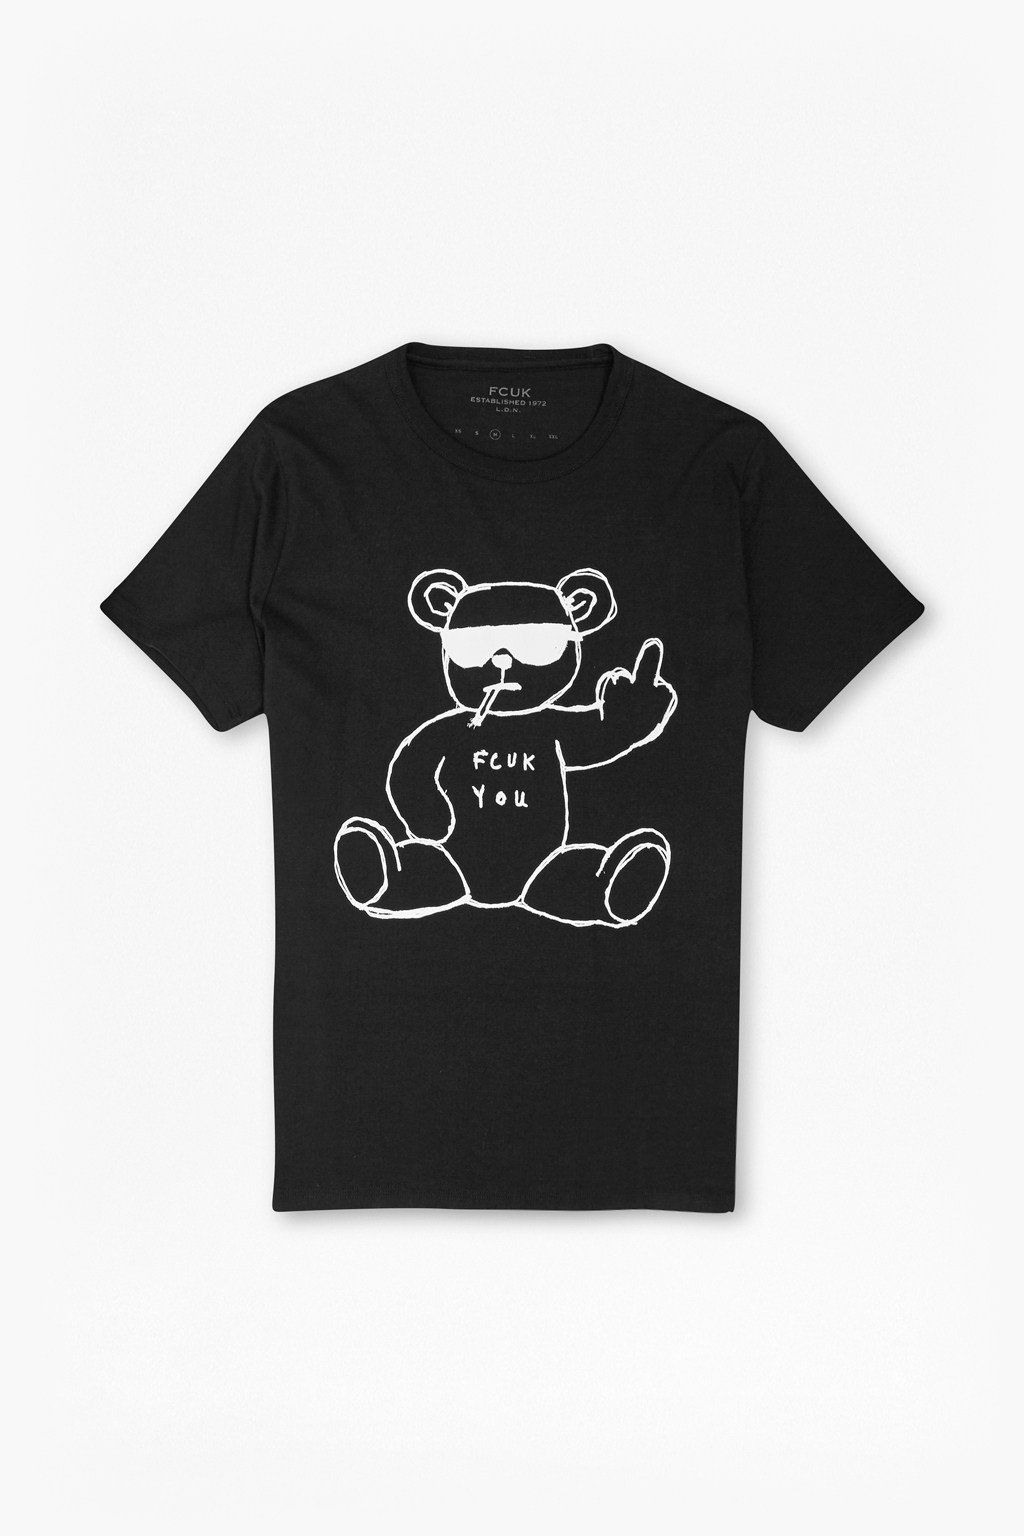 Rude bear graphic t shirt tshirts polo shirts french for T shirt graphics for sale